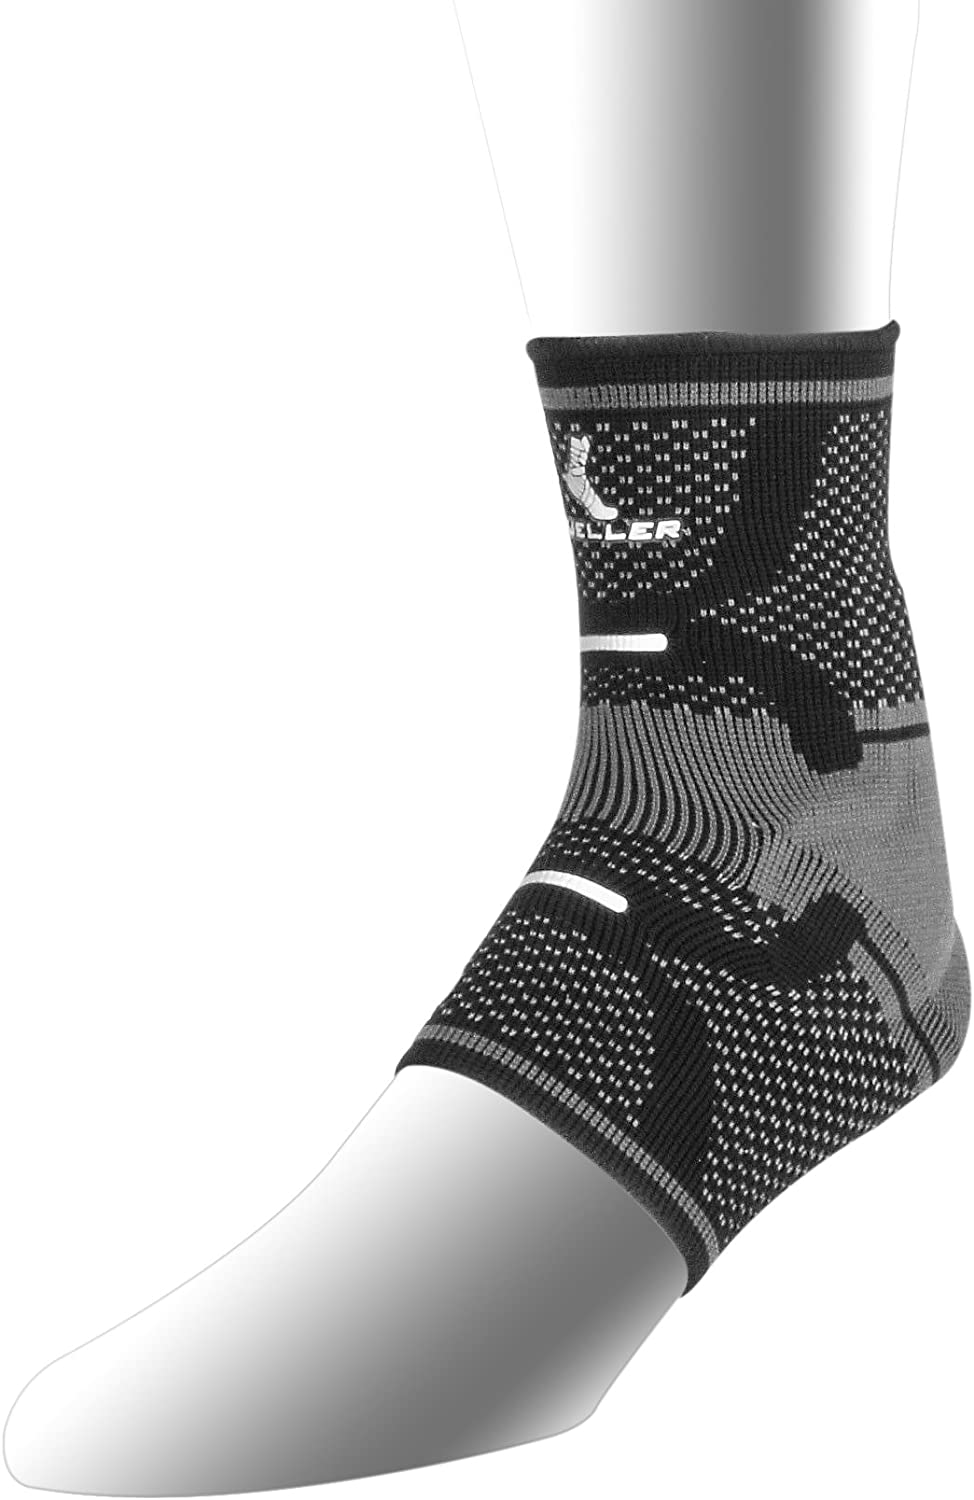 Mueller Sports Arlington Mall Medicine Omniforce Ankle Max 75% OFF Right Support Small